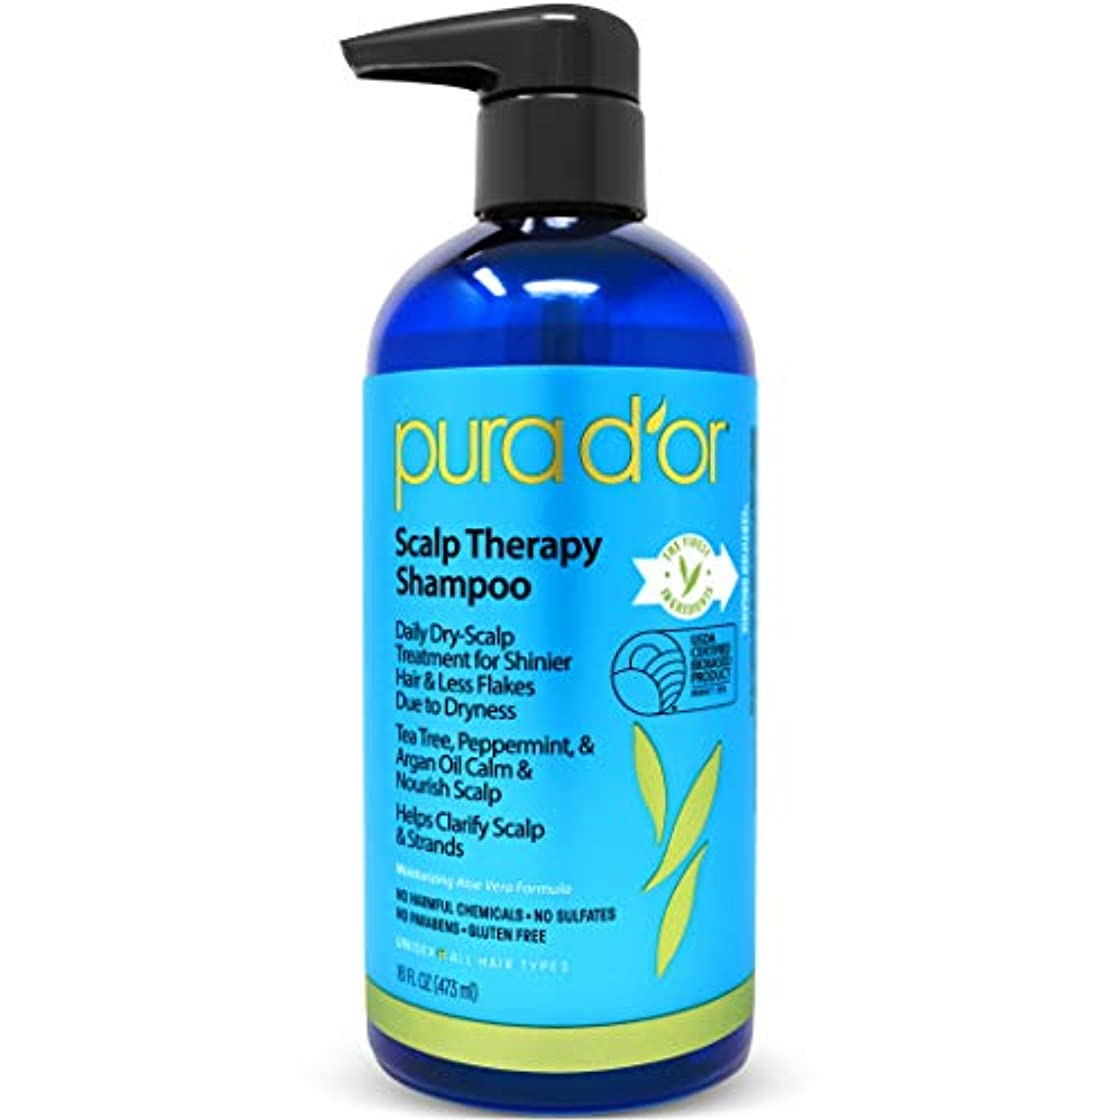 貸す細部偽Pura D'or Premium Organic Solution - Scalp Therapy Shampoo - 16 fl oz (473 ml) プラドール スカルプセラピー シャンプー